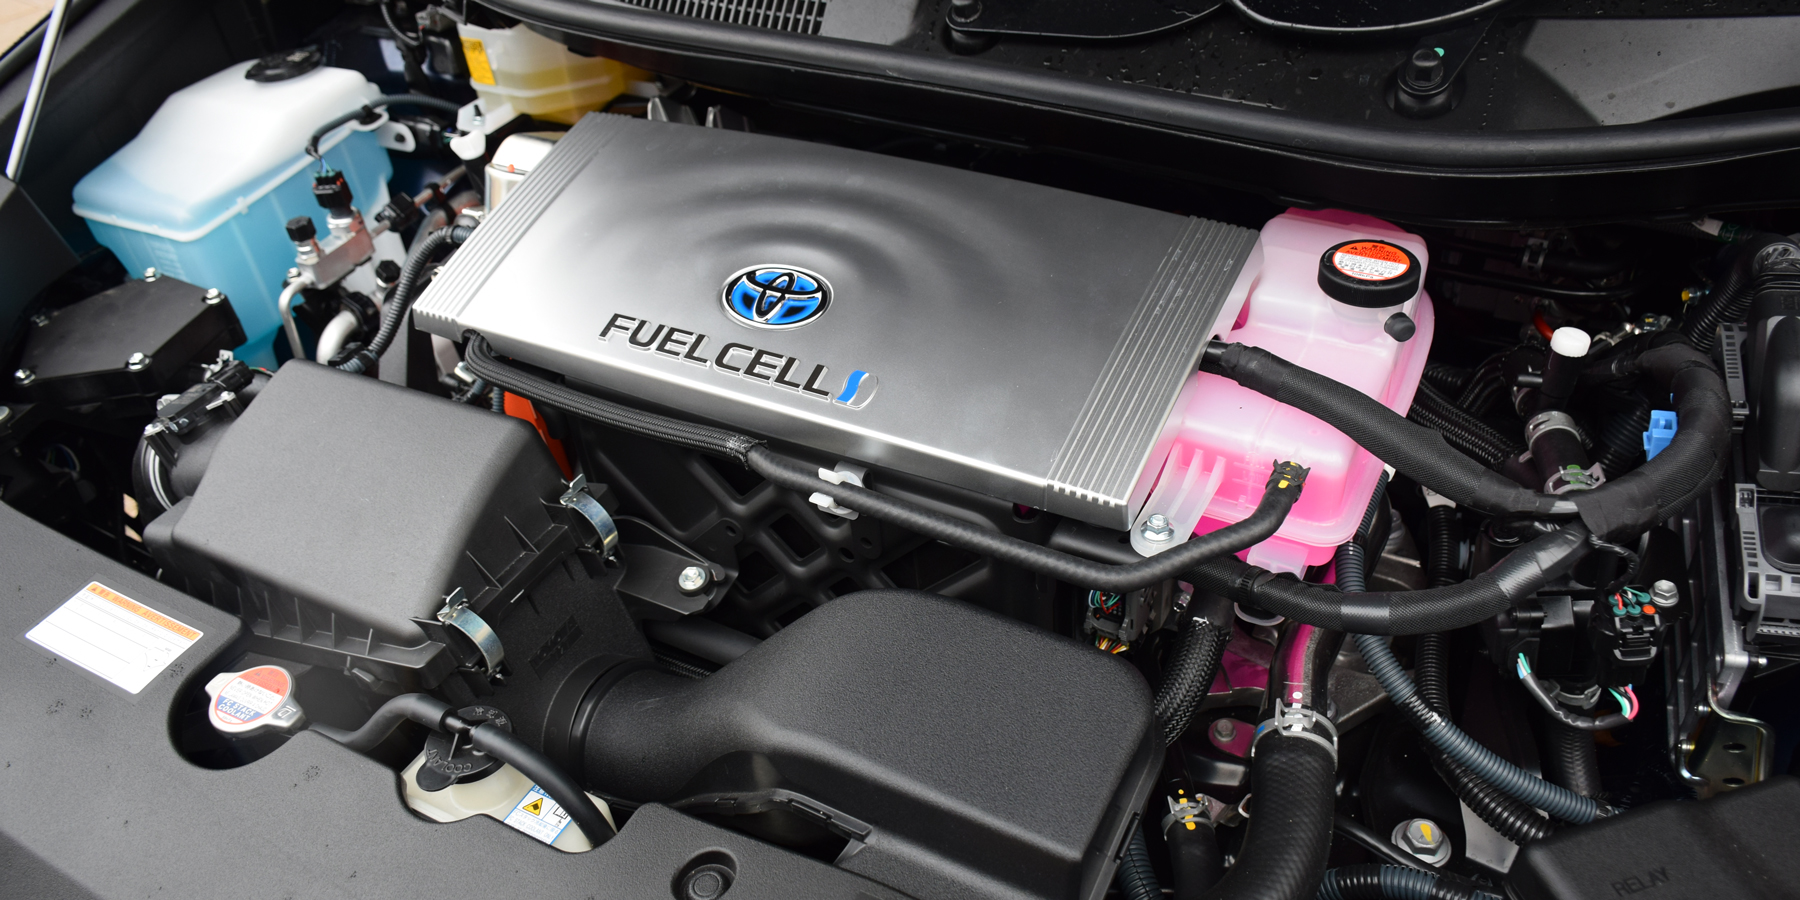 Hydrogen Fuel Cell under the hood